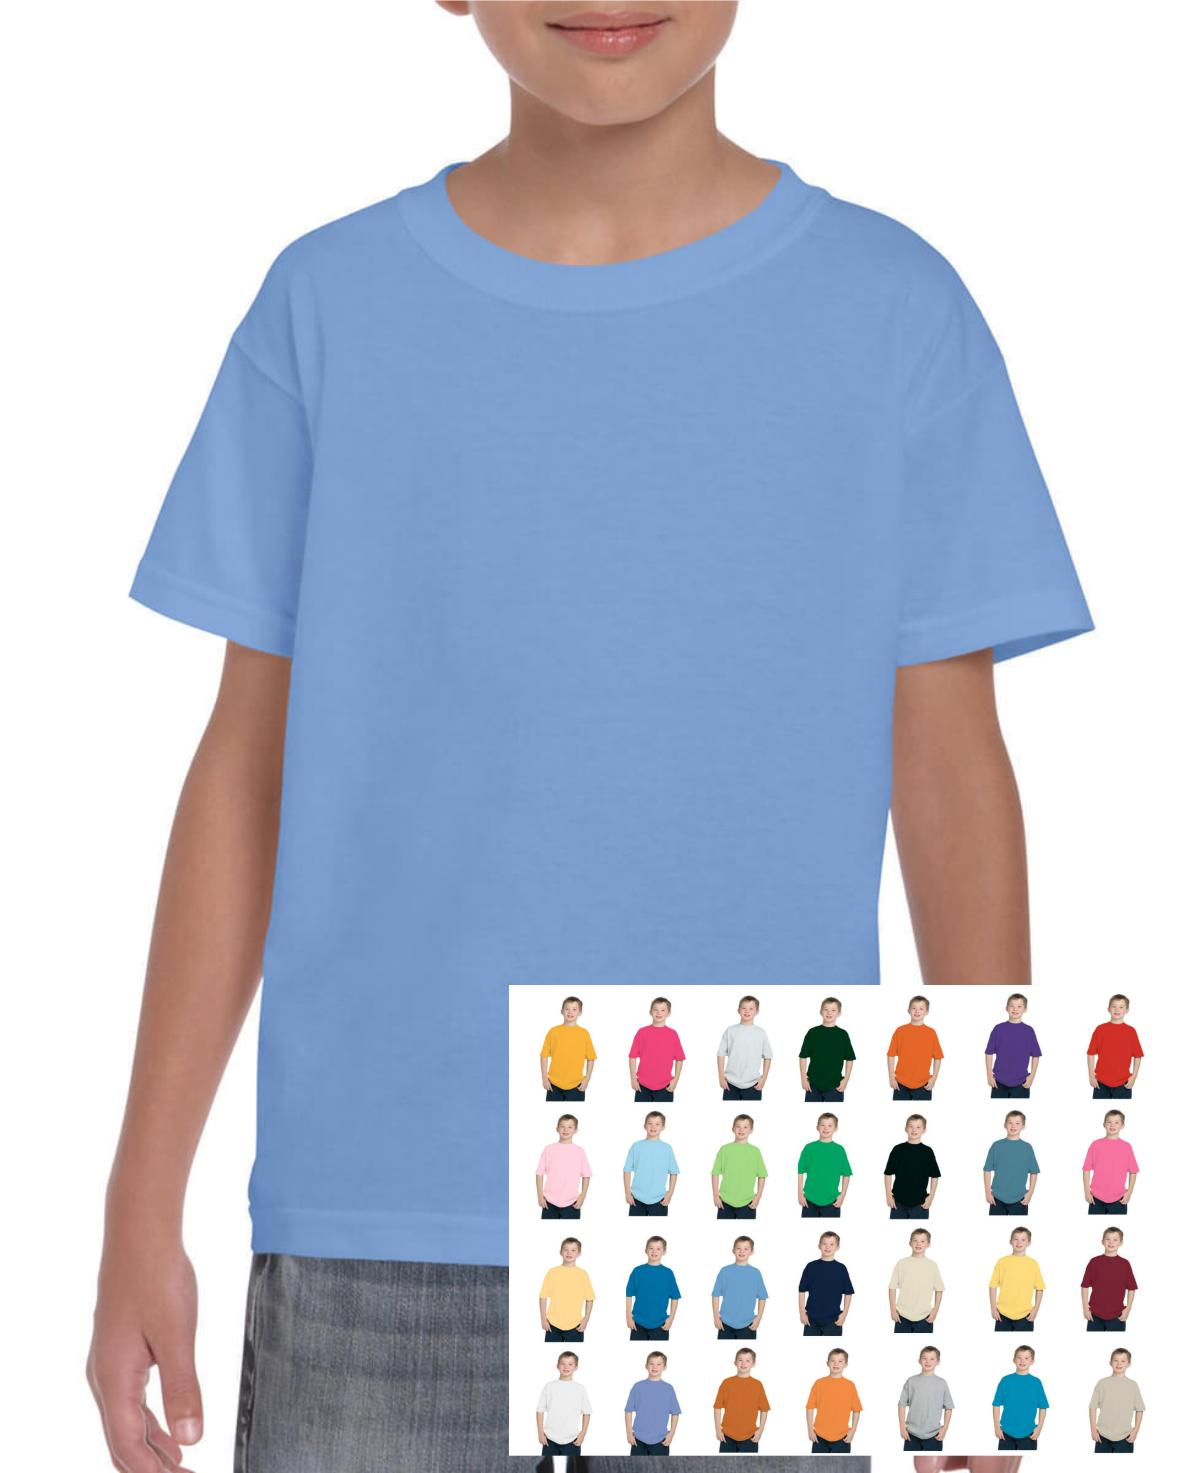 Gildan Youth Kid's Child Adult Cotton T-shirt Plain Blank G5